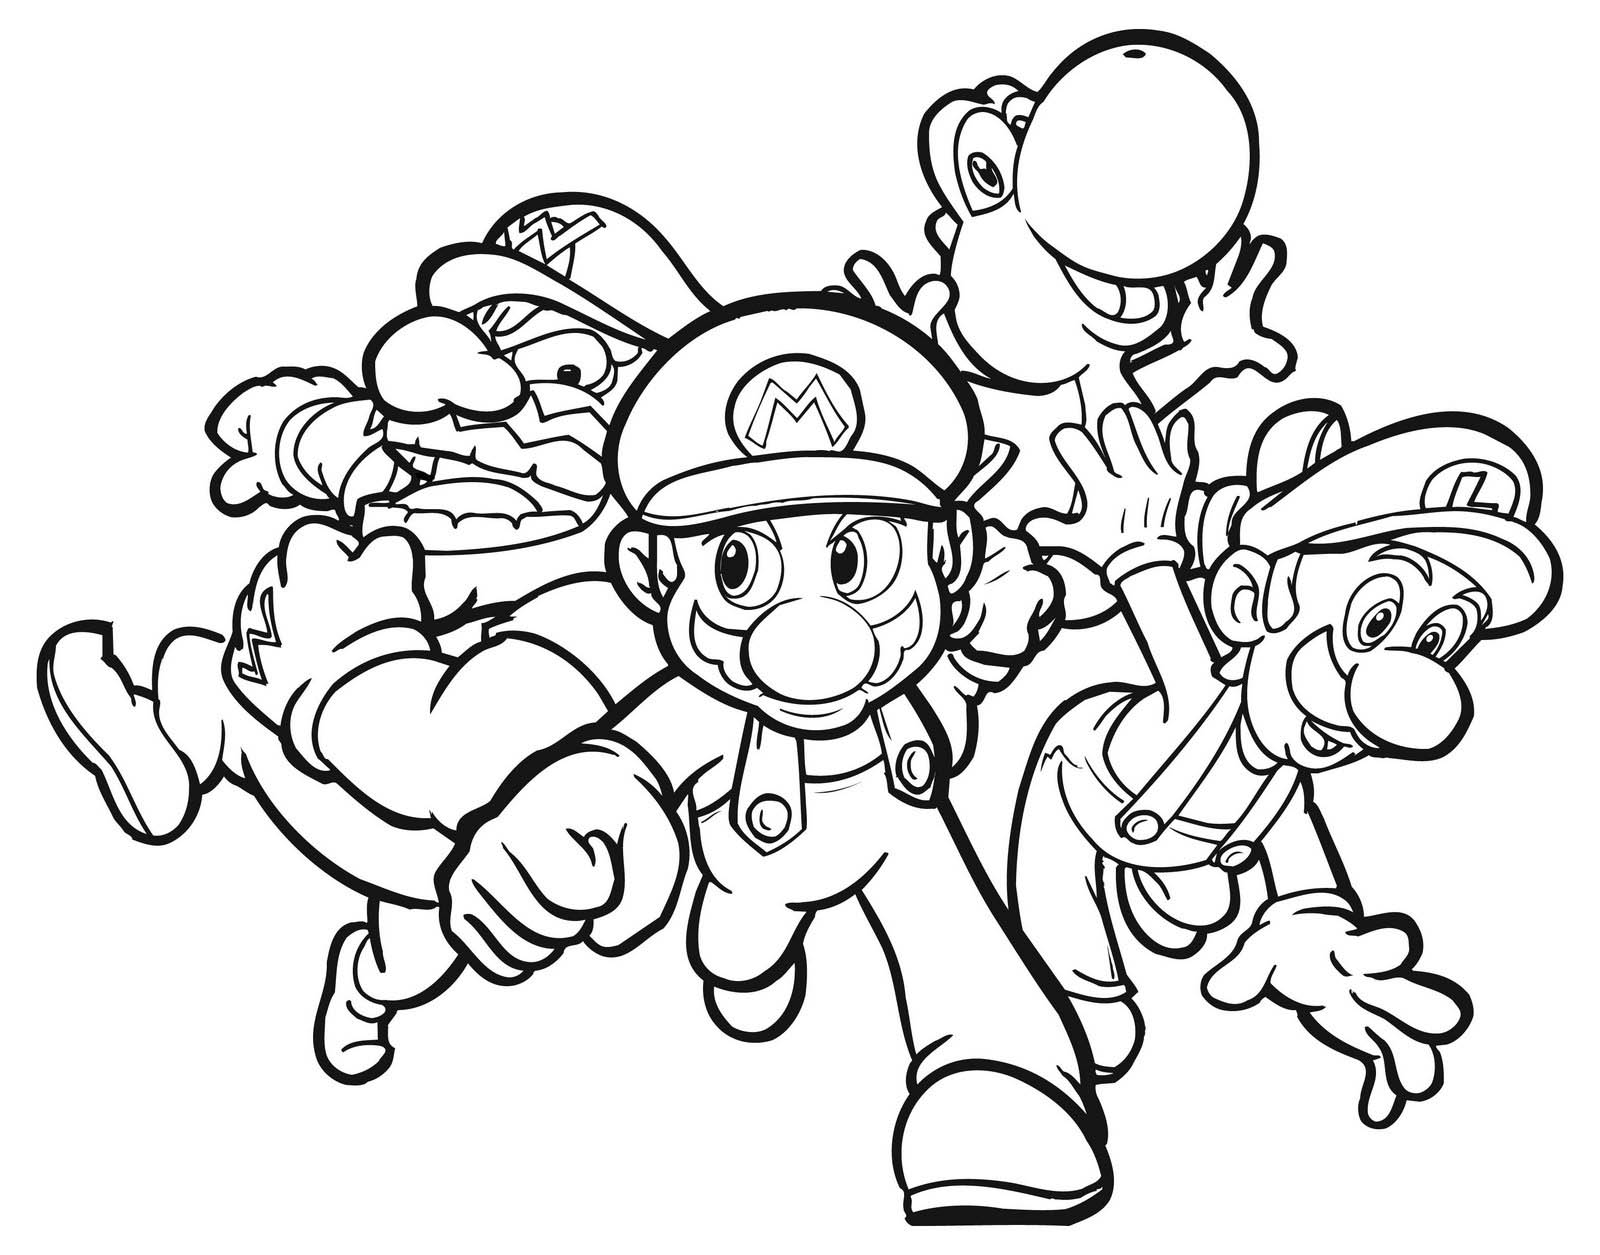 free printable mario coloring pages for kids, coloring pages